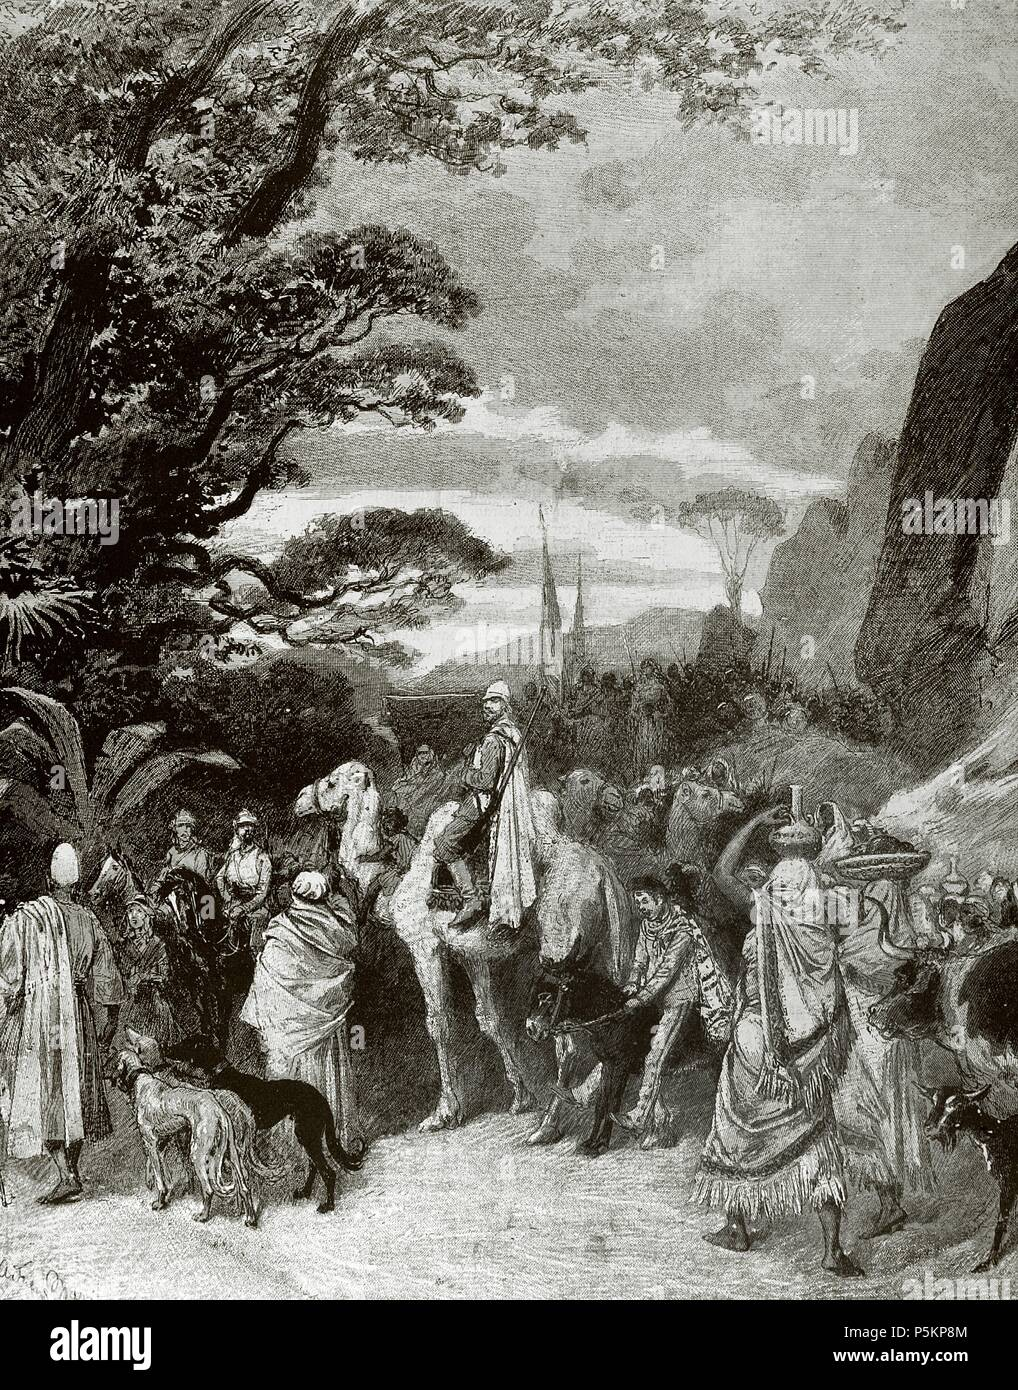 Adolphe Belot (1829-1890). French dramatist and novelist. La Venus Noire: Voyage Dans l'Afrique Central (The Black Venus: Journey to Central Africa). The Caravan. Engraving in The Spanish and American Illustration, 1879. - Stock Image